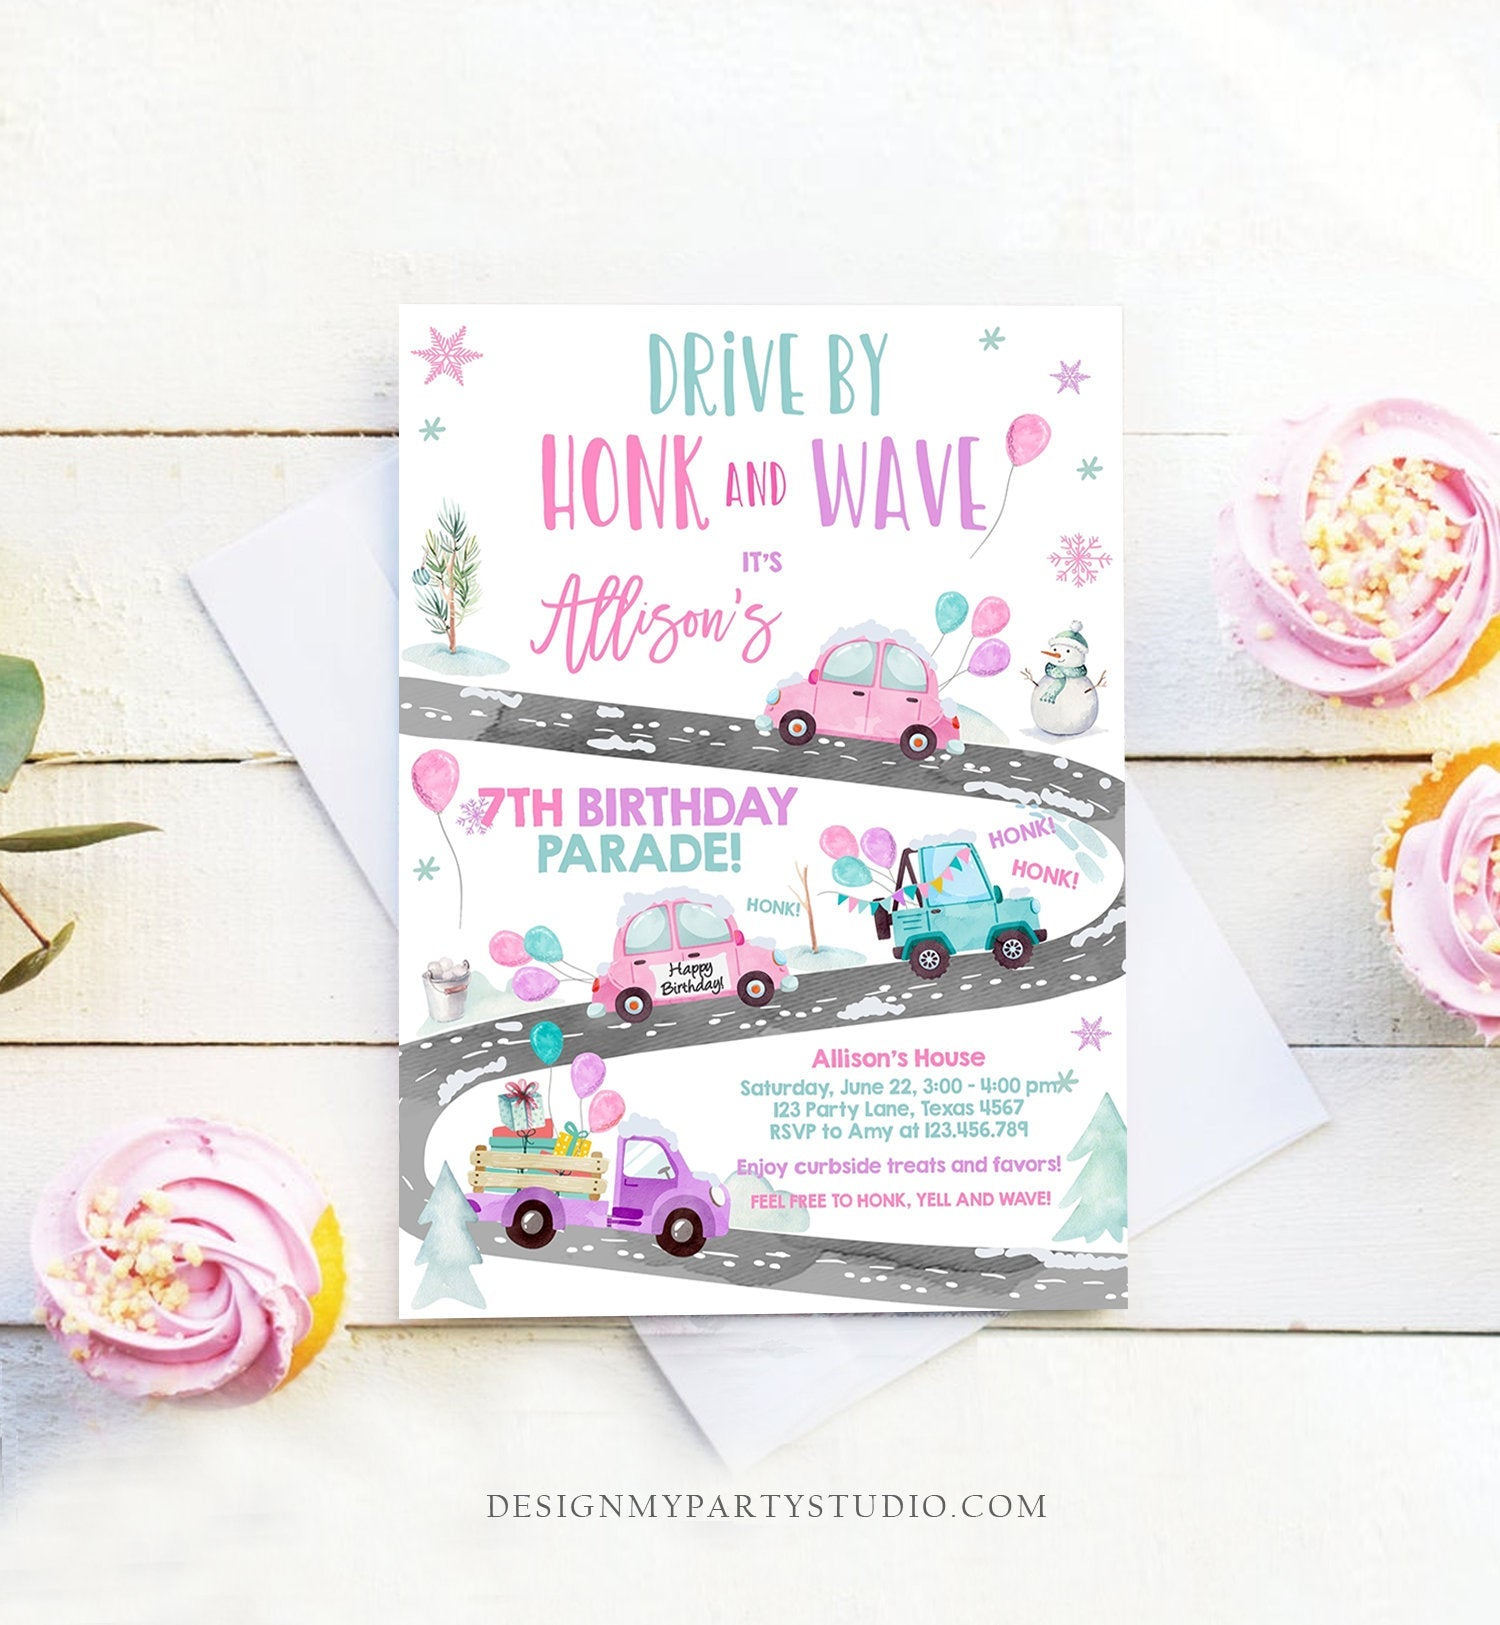 Editable Winter Drive By Birthday Invitation Parade Winter Onederland Virtual Party Invite Girl Pink Quarantine Download Digital Corjl 0333